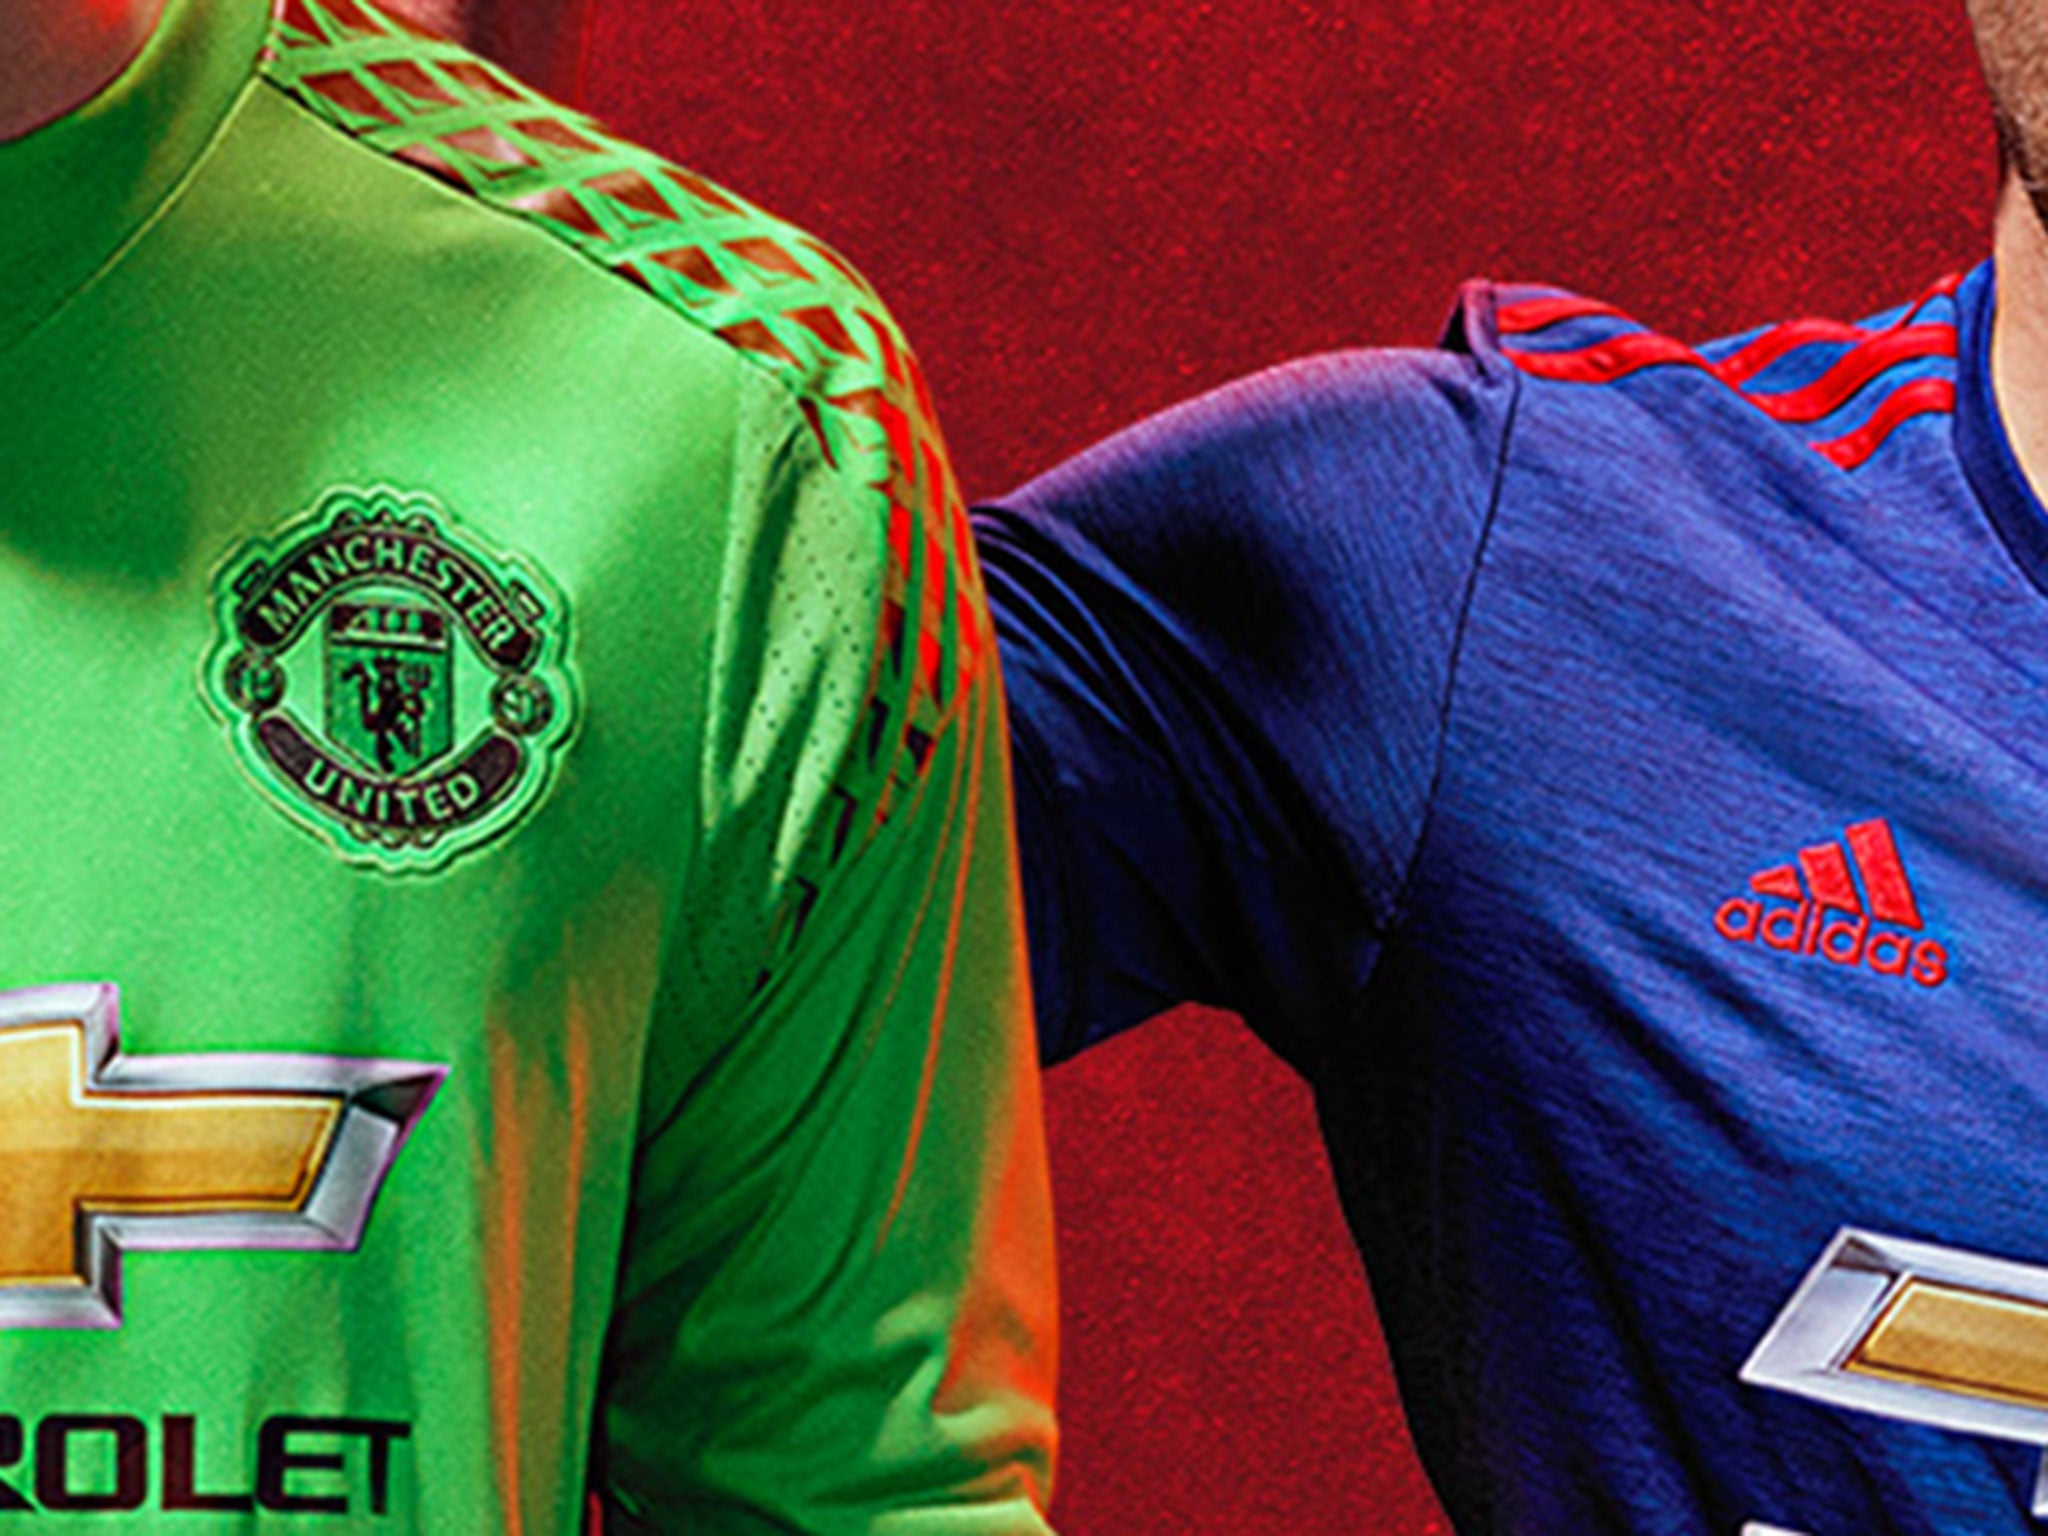 Manchester United away kit revealed: Moody David De Gea